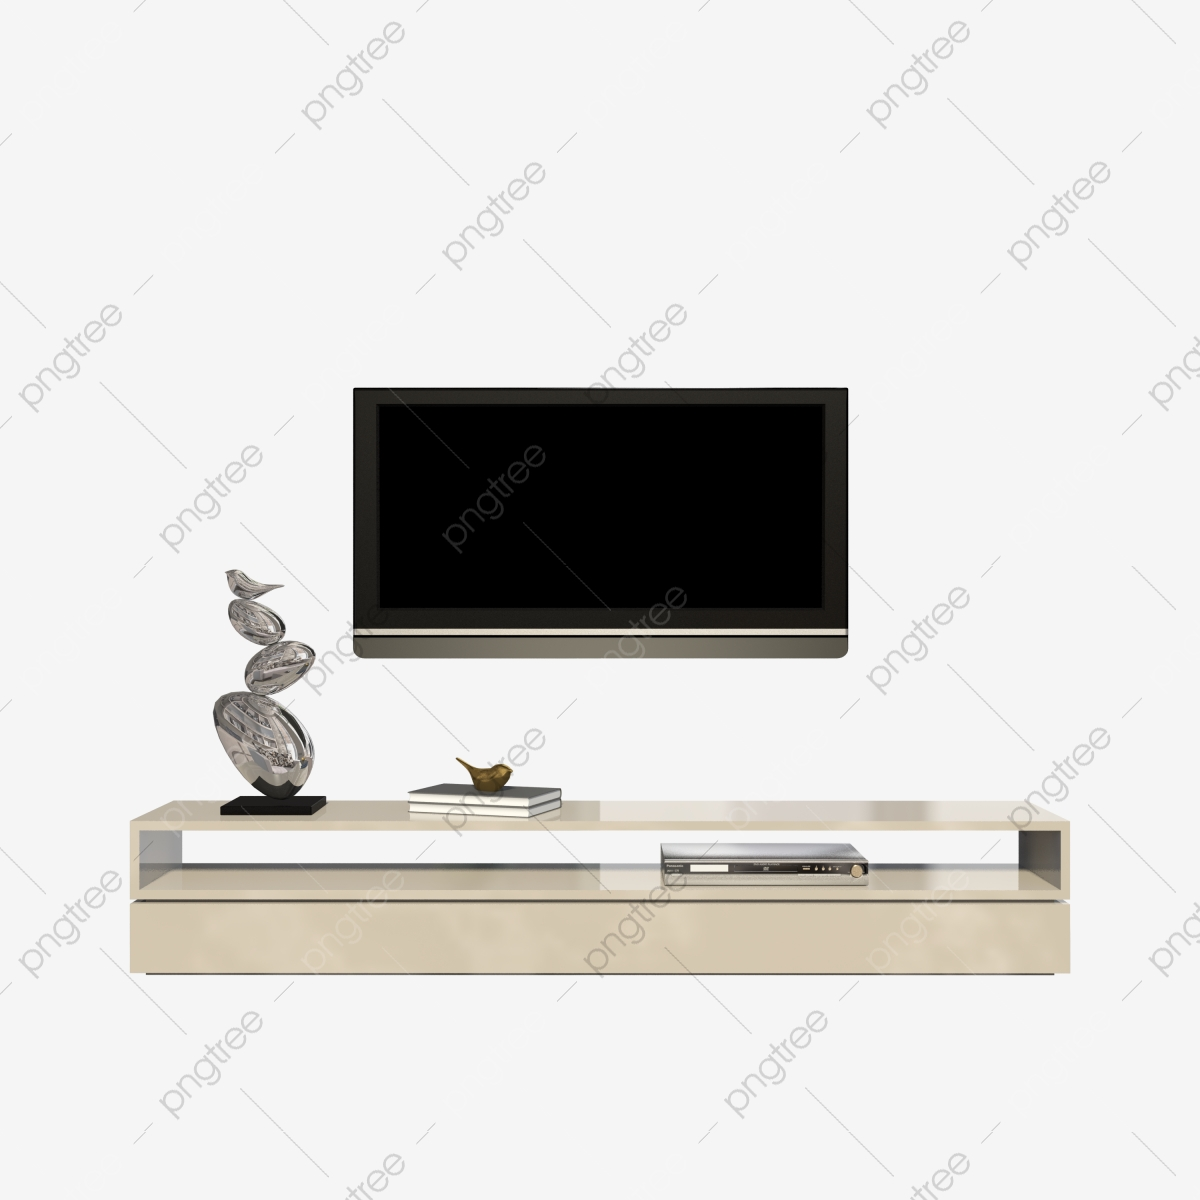 Living Room Tv Cabinet Tv Tv Tv Cabinet Furniture Png Transparent Clipart Image And Psd File For Free Download